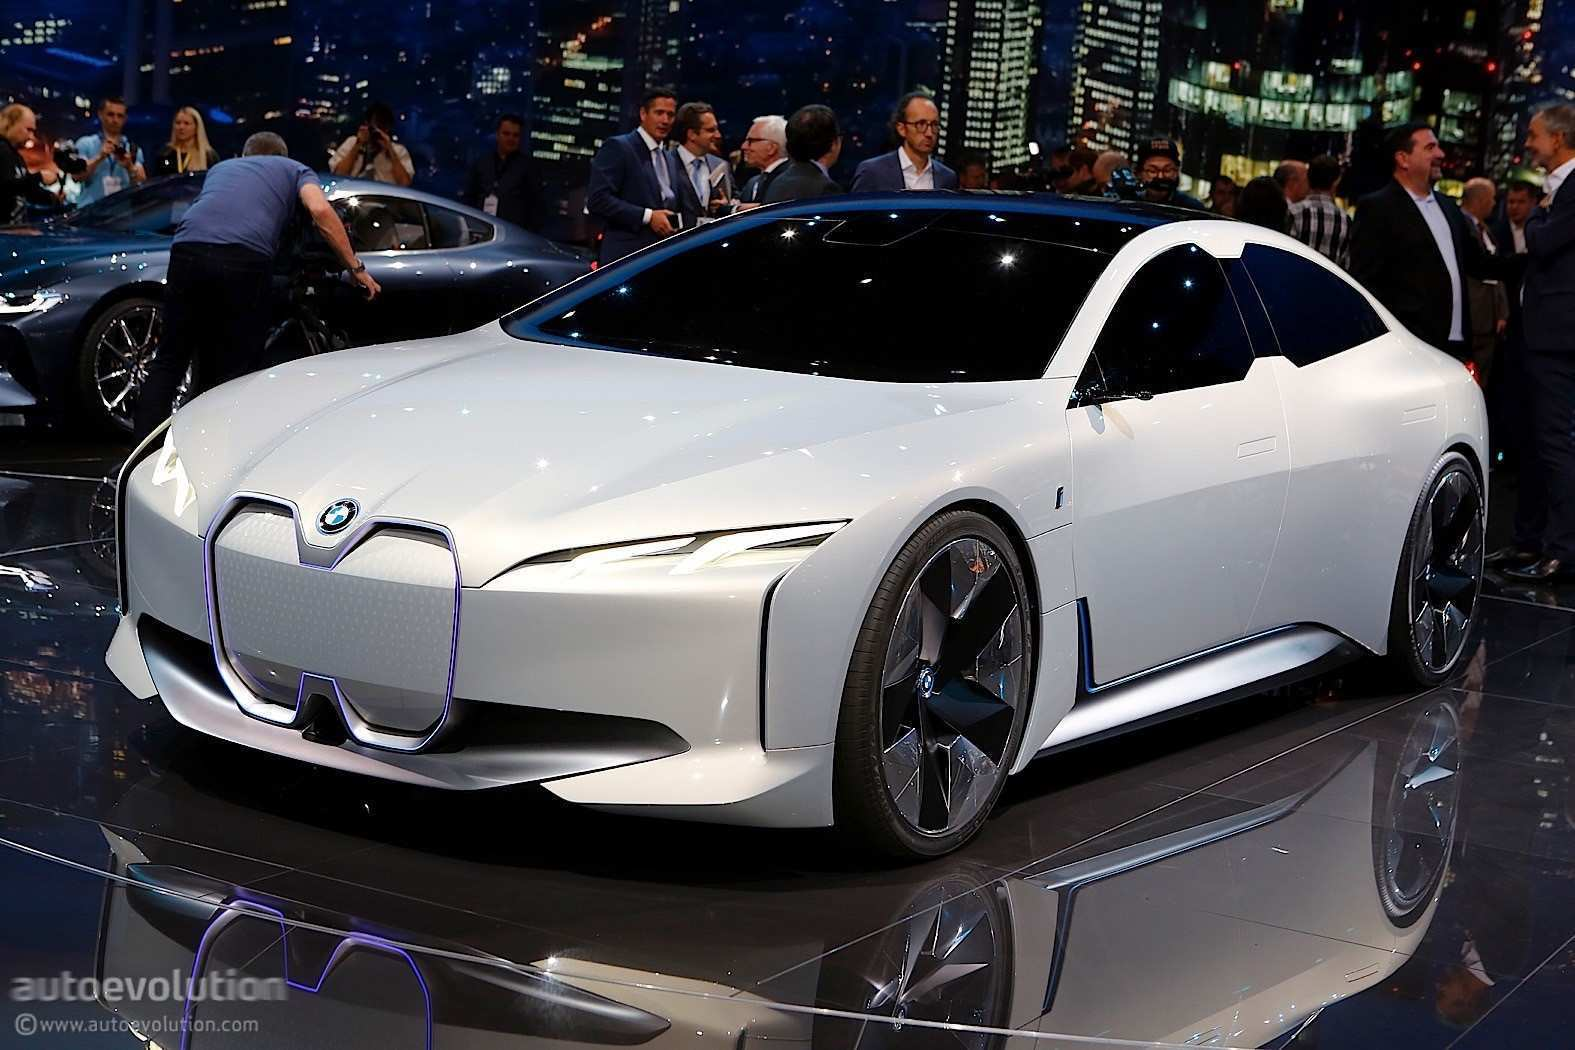 85 All New Bmw Elbil 2020 Concept for Bmw Elbil 2020